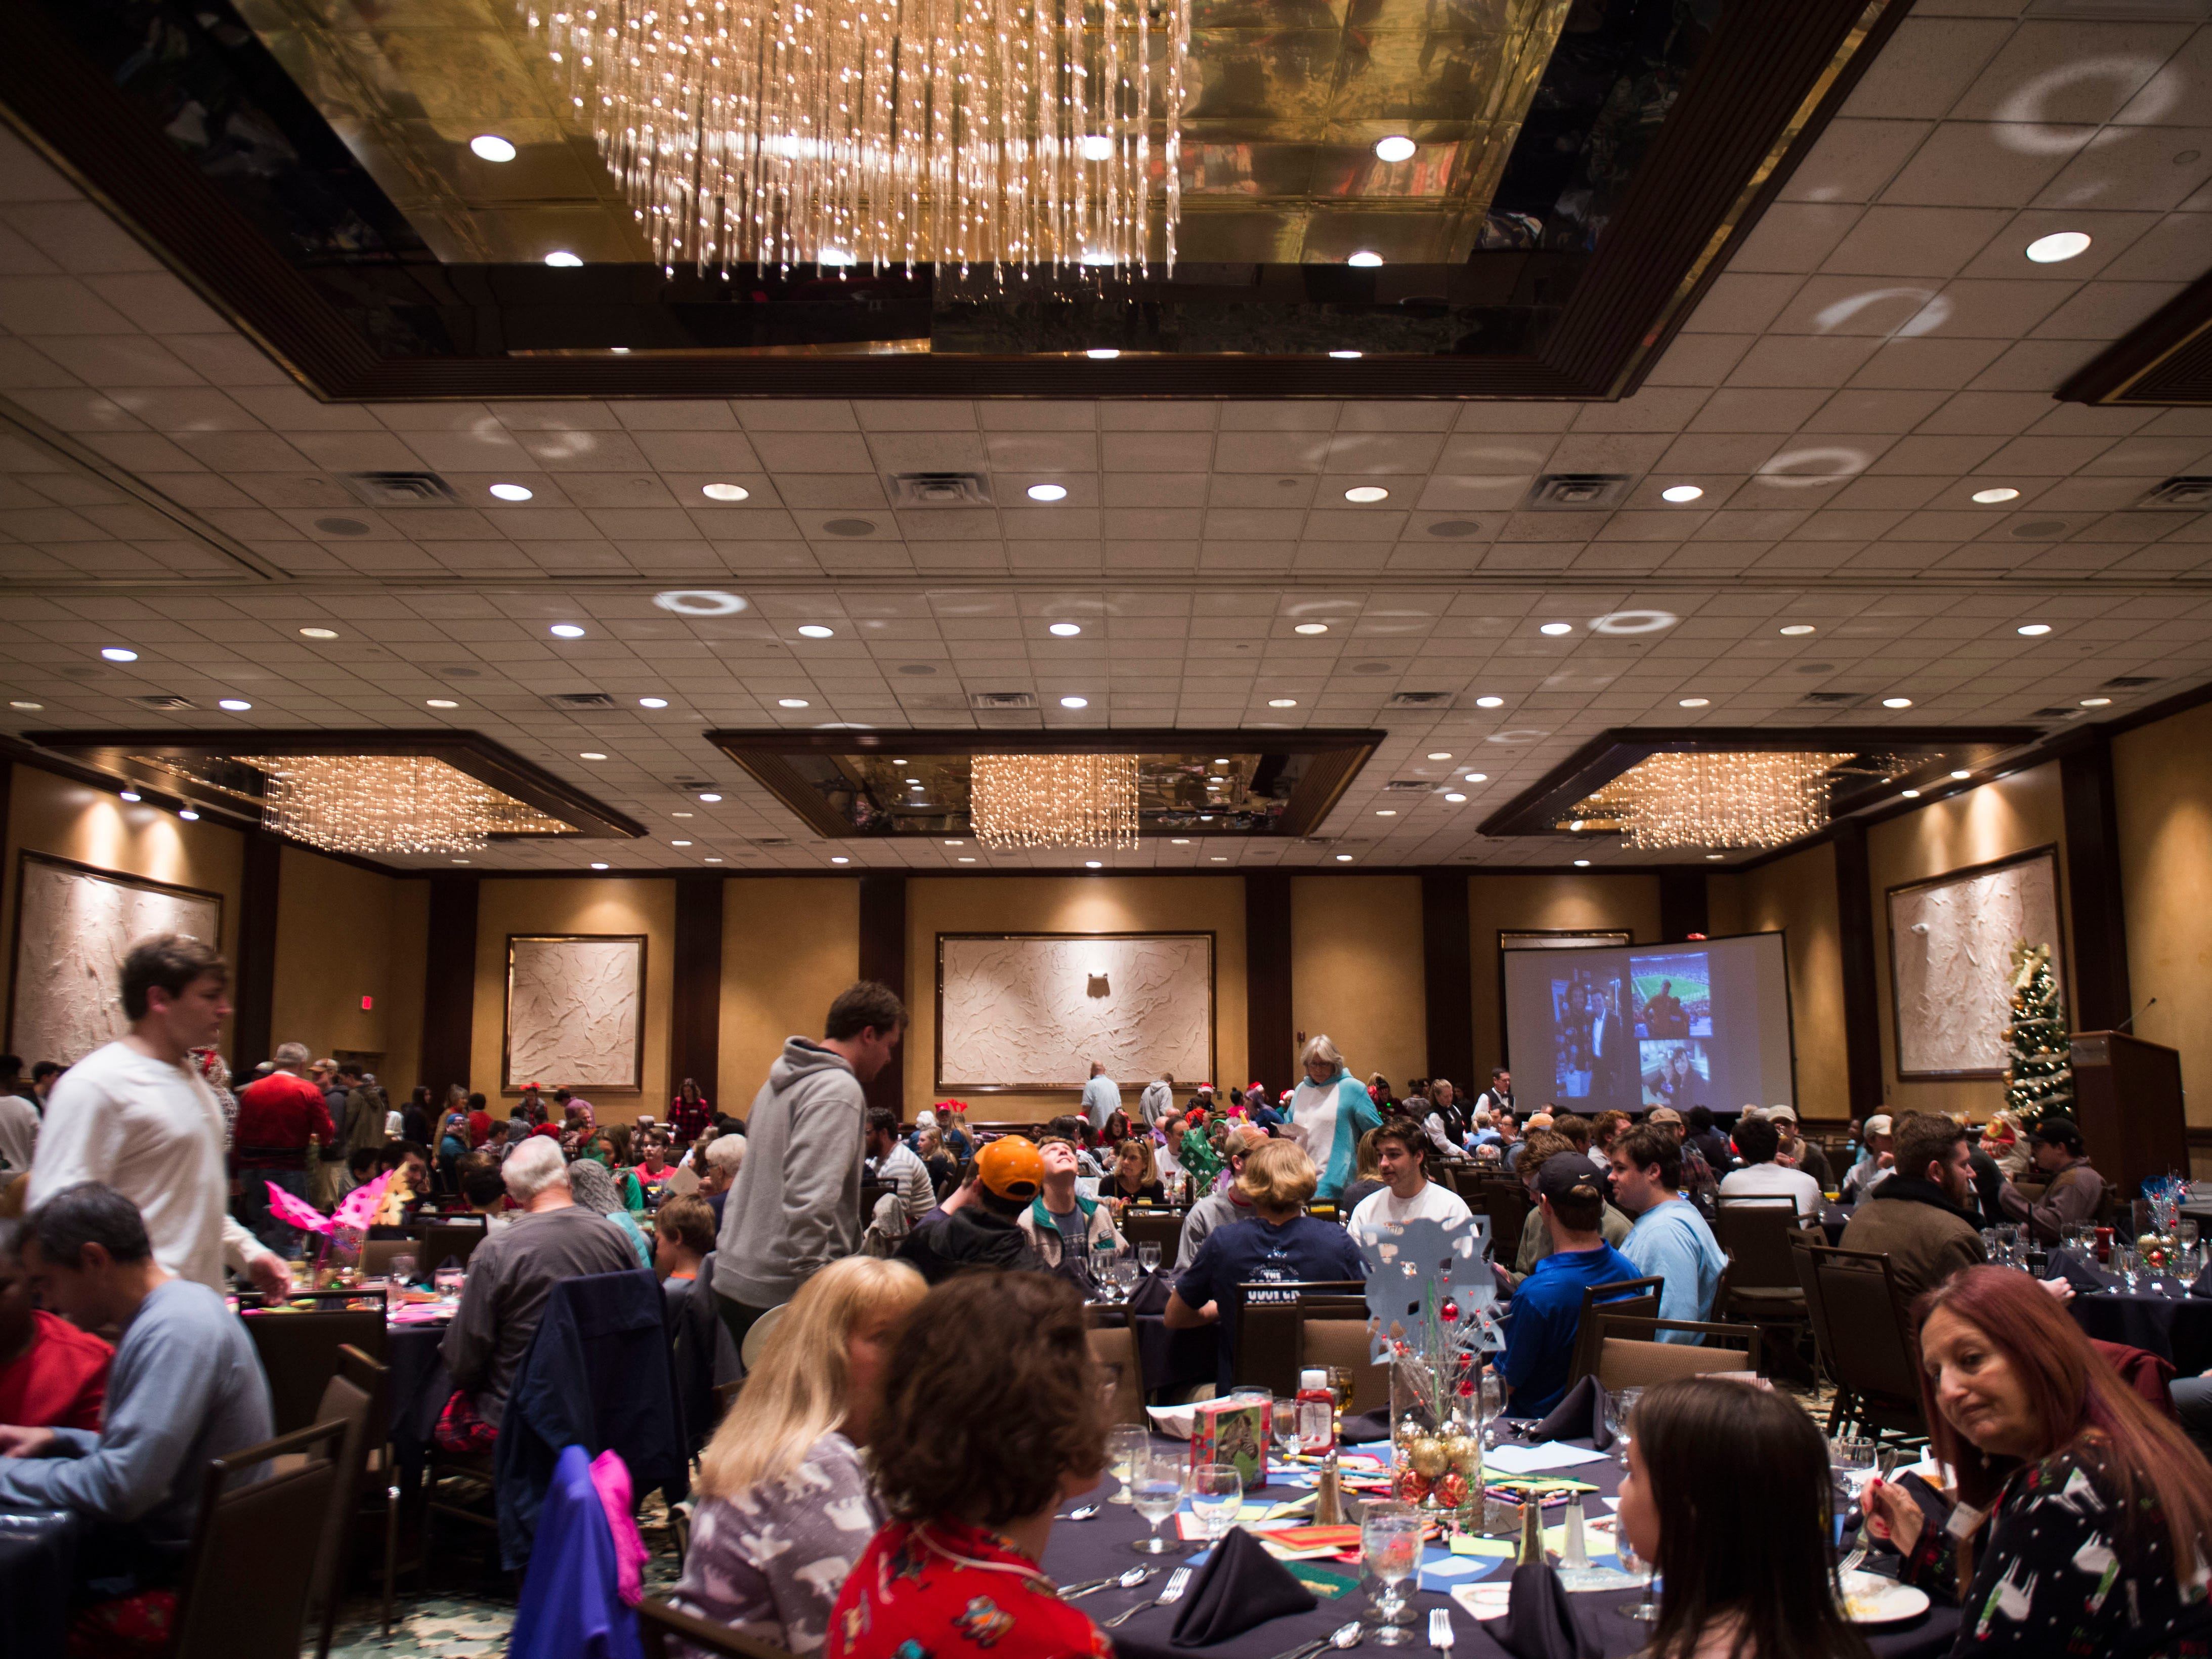 Big Brothers Big Sisters participants gather at the Crowne Plaza for their annual holiday party Saturday, Dec. 1, 2018. Nearly 300 mentors, mentees and family members were in attendance.